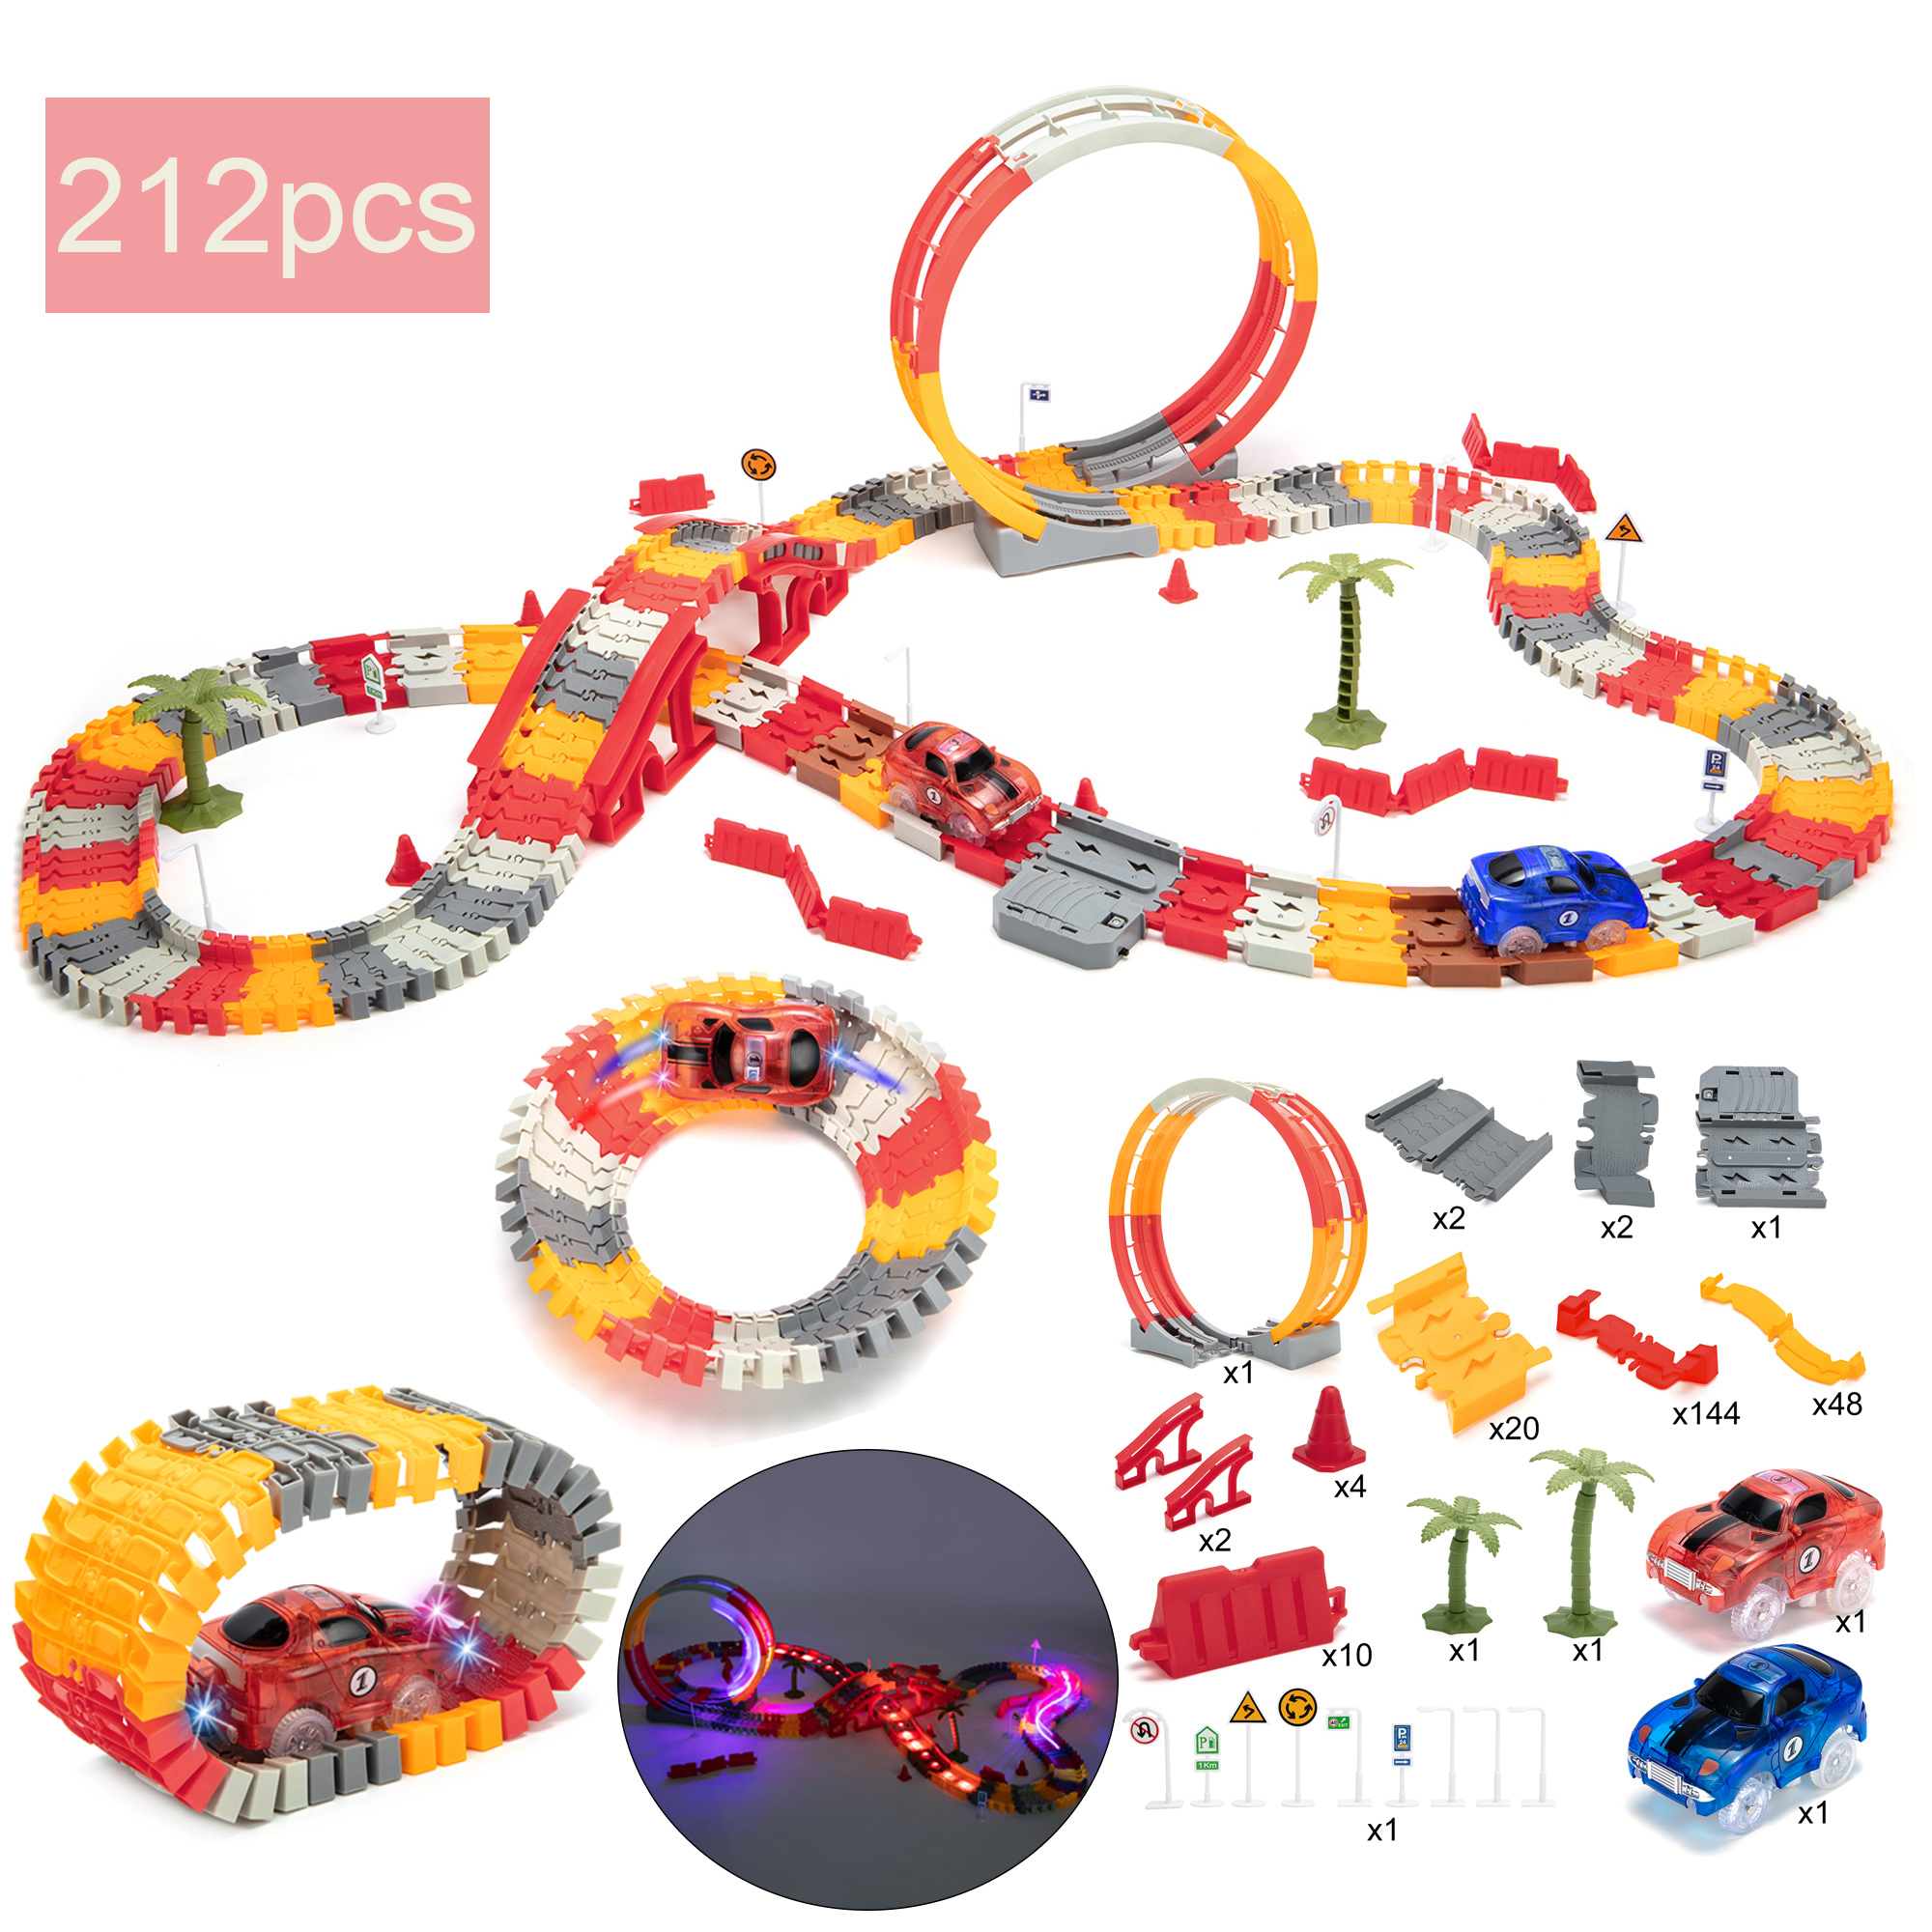 Car Track Fire Track Smart Car Fire Race Tracks Deluxe Garage with Toggle Switch and Music Button for Kids Age 3-7 Erwazi Race Tracks for Boys Multicolor